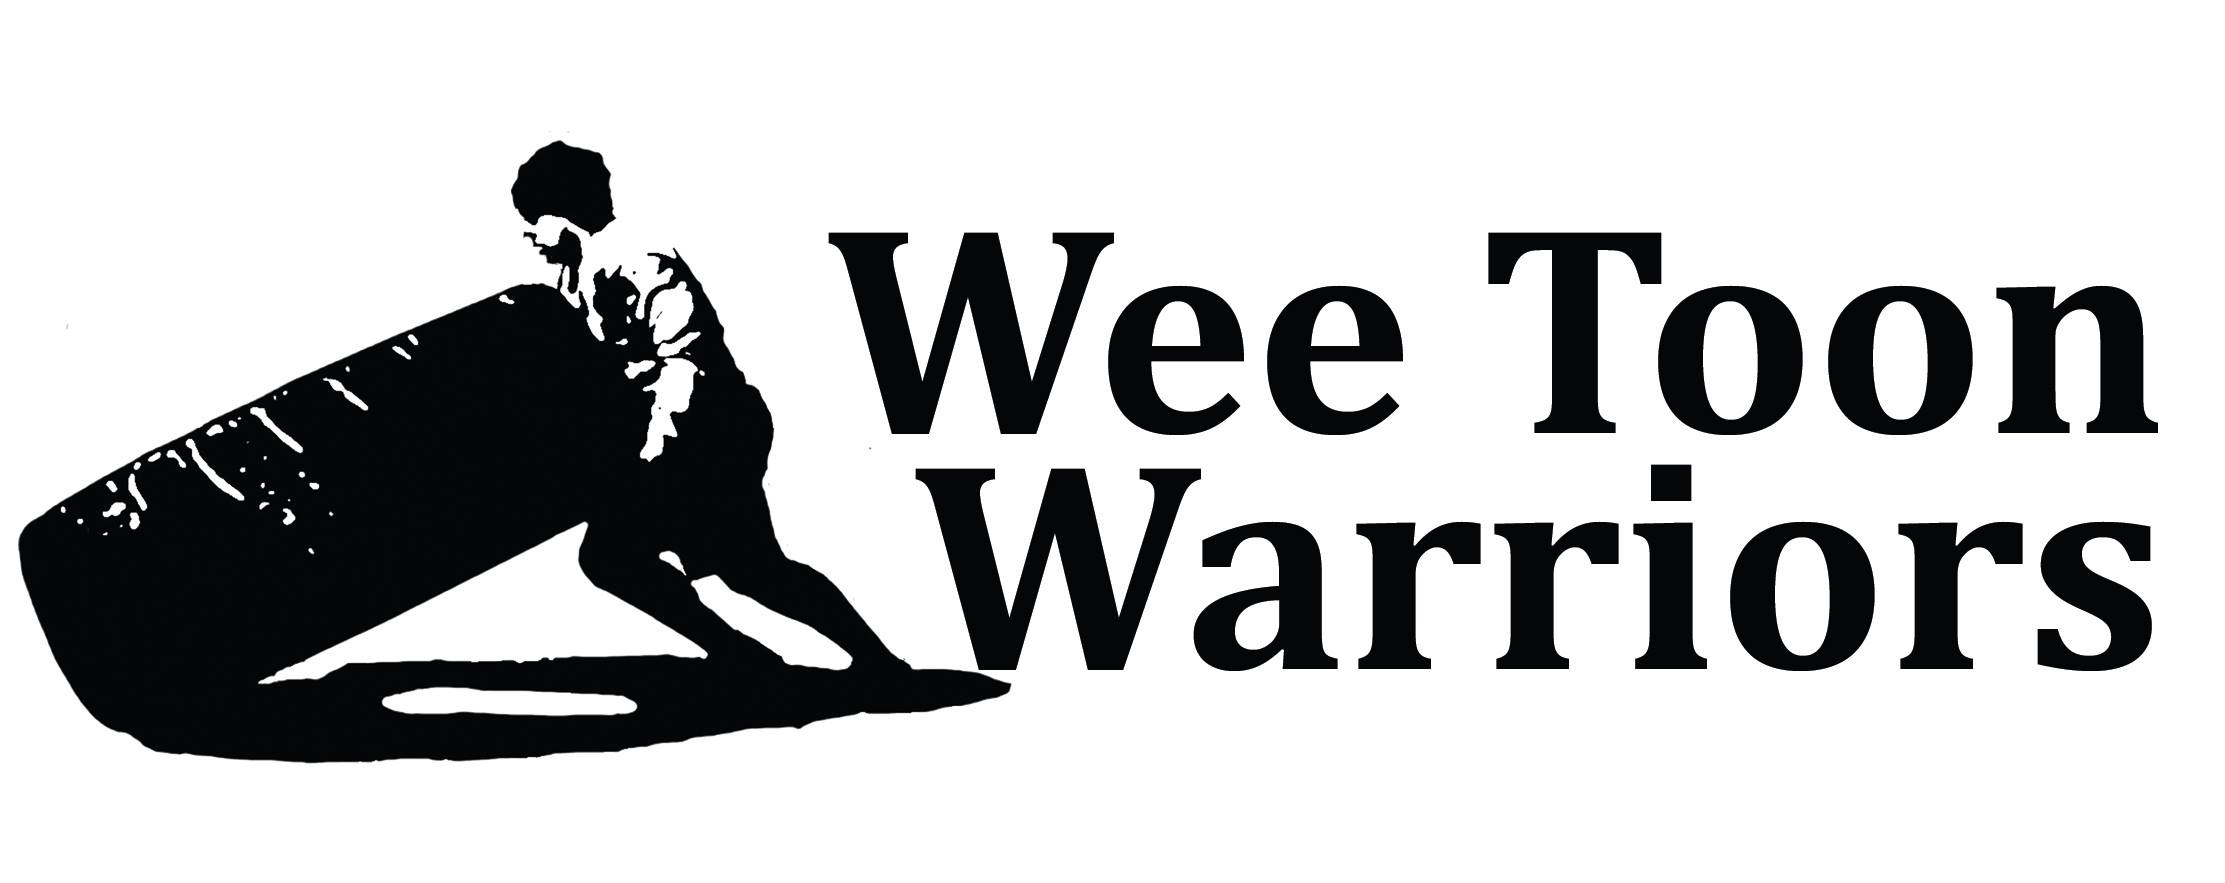 Wee Toon Warriors Logo